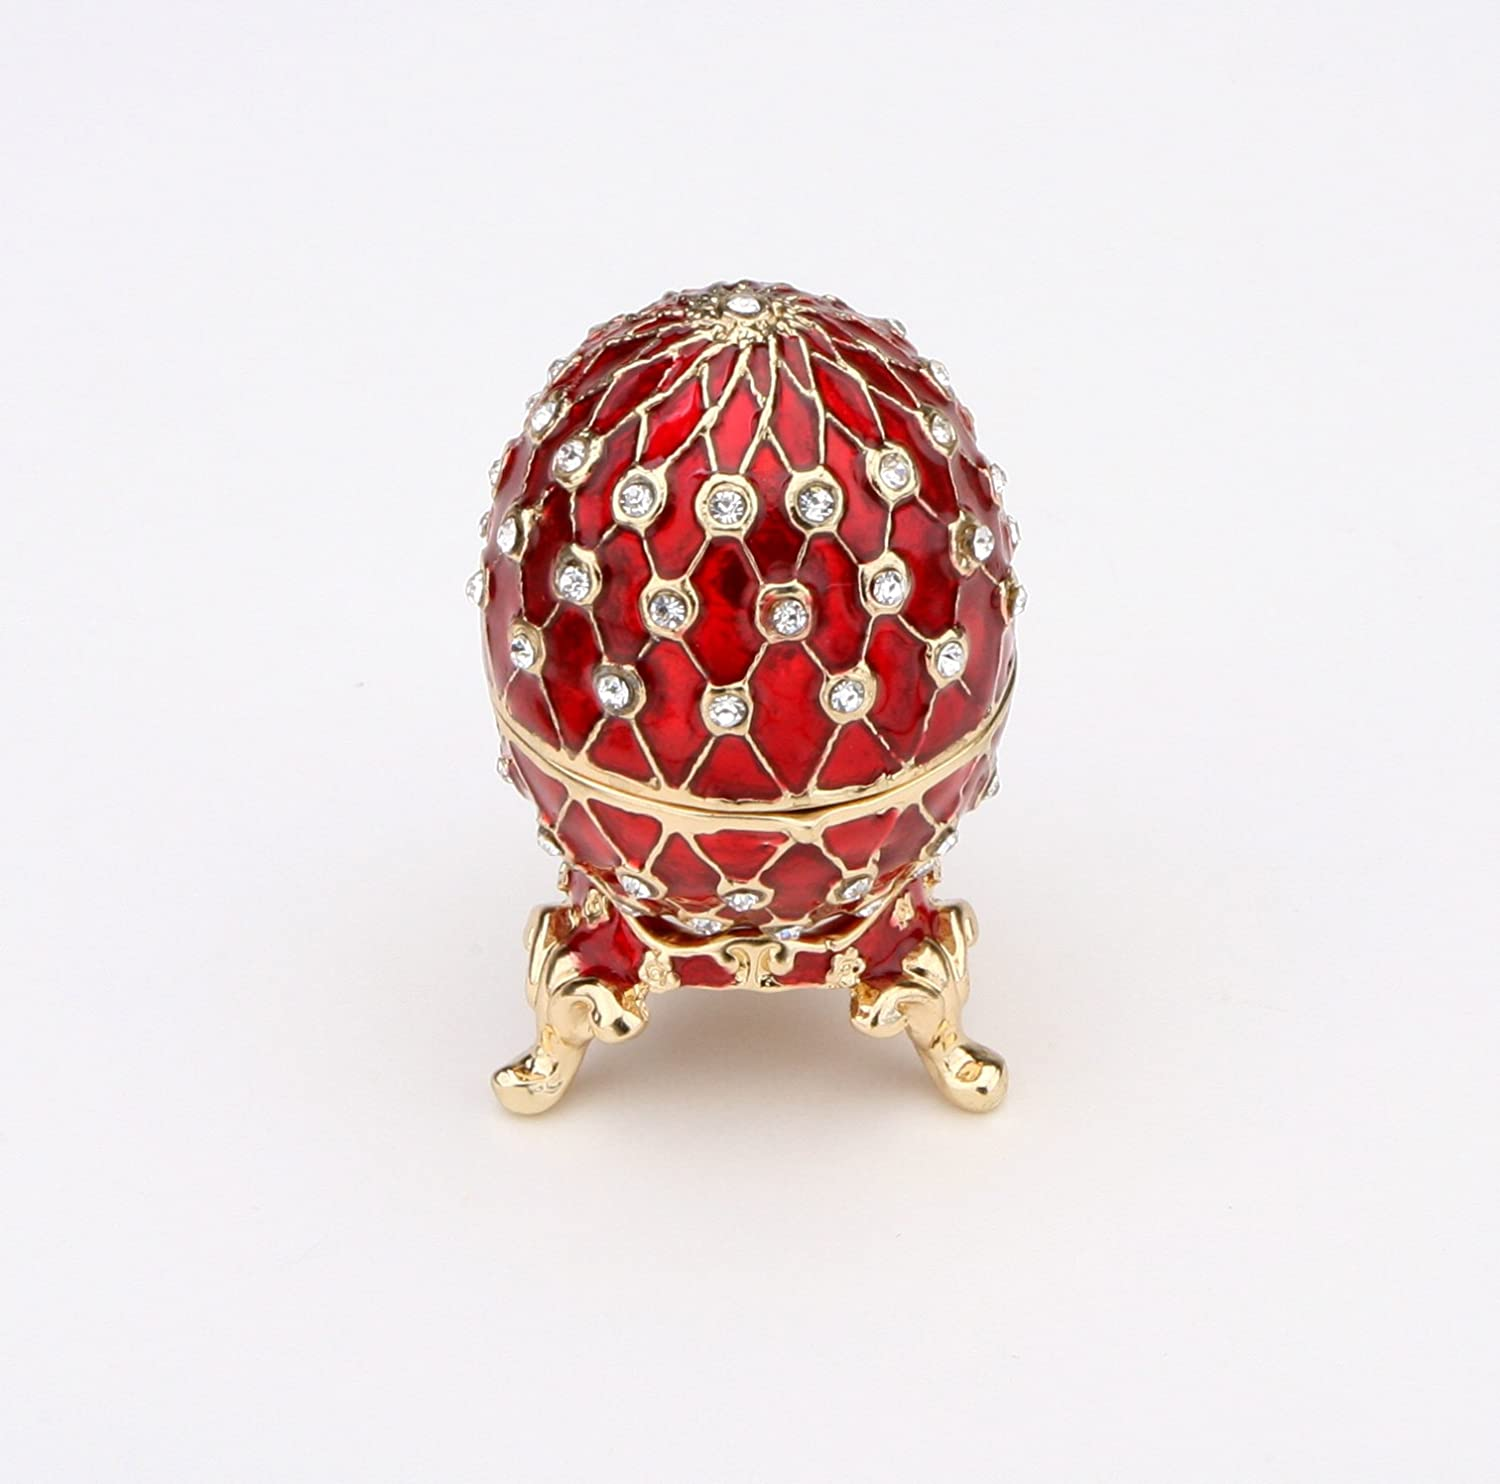 Ruby Wedding Gifts For Parents: 40th Wedding Anniversary Gifts For Parents: Ruby